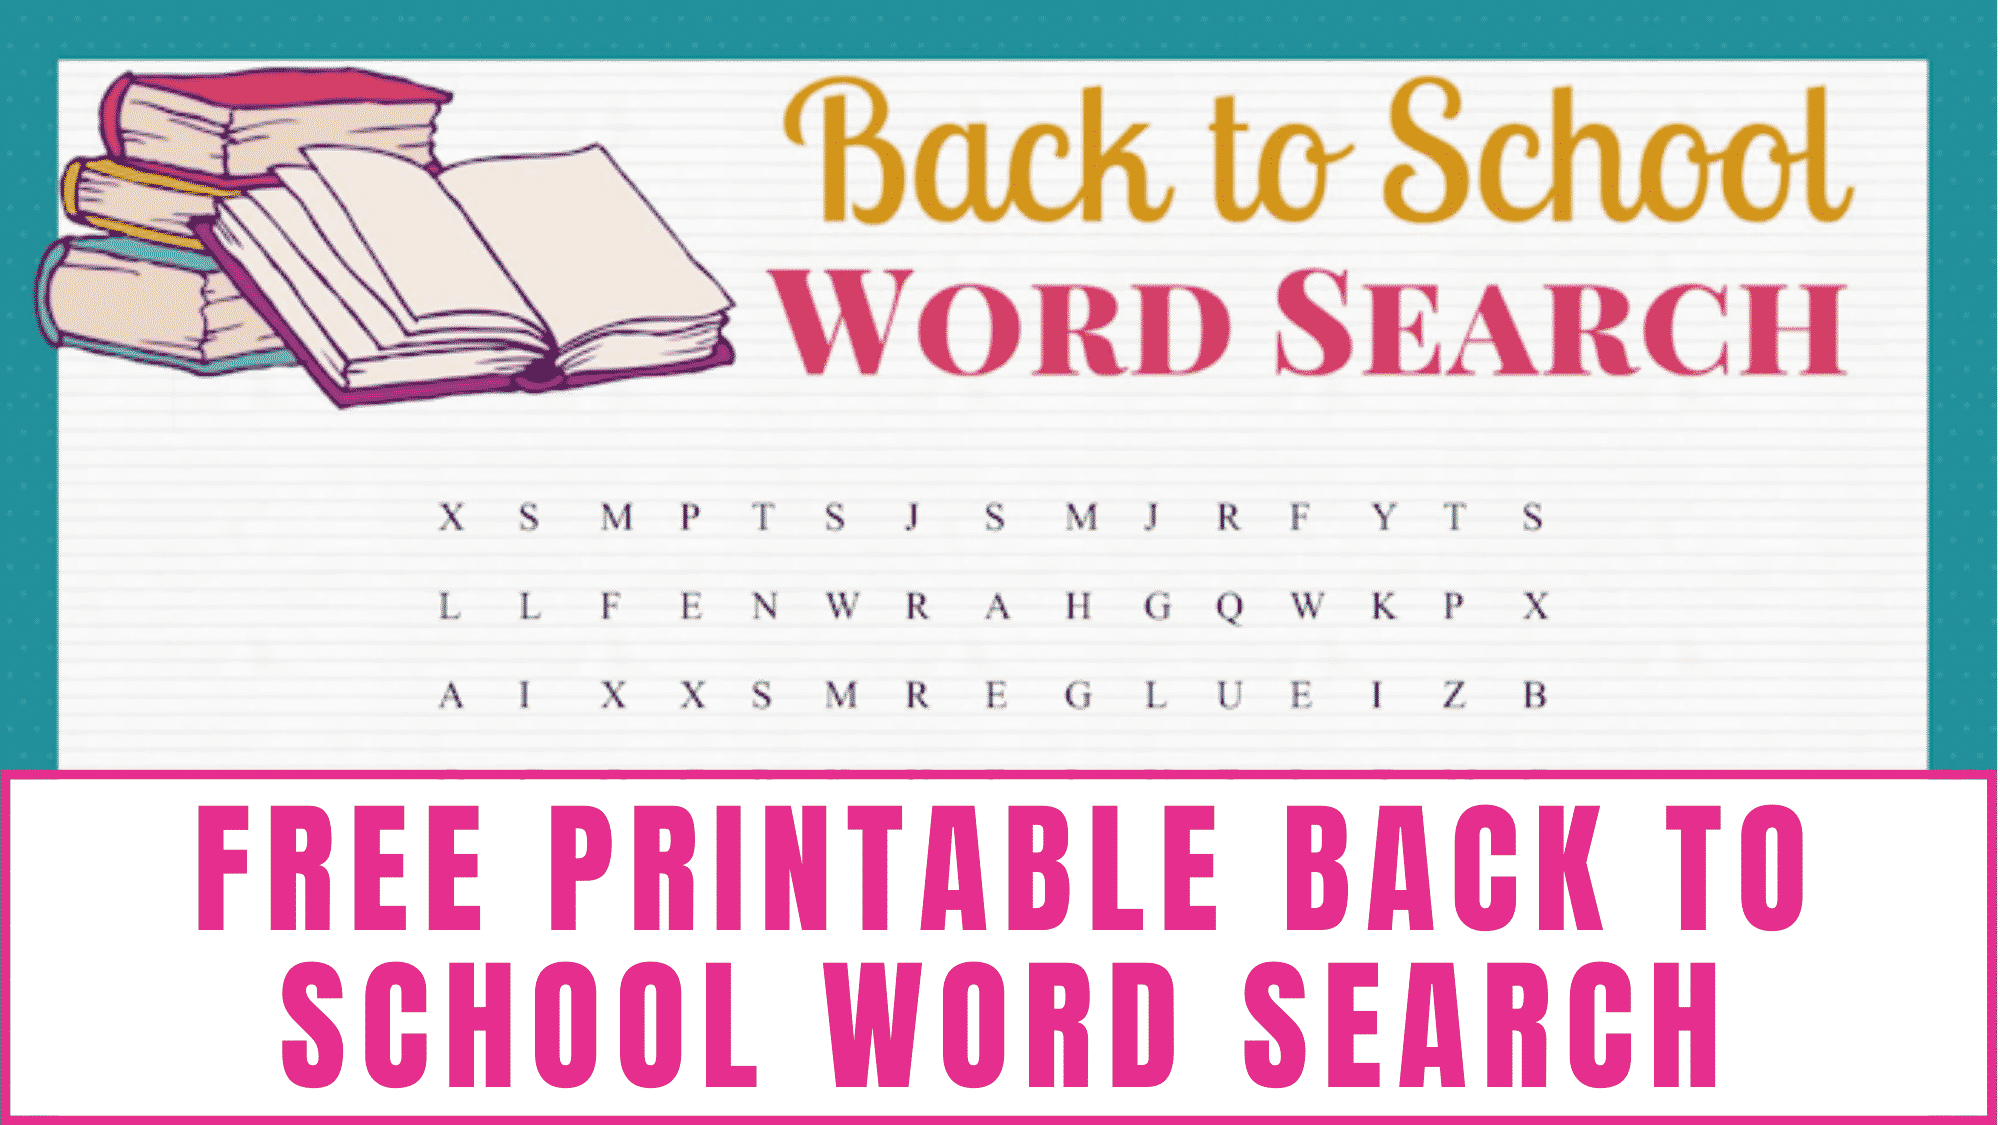 Calling all teachers who are looking for a fun first day of school activity? This free printable word search back to school is perfect.